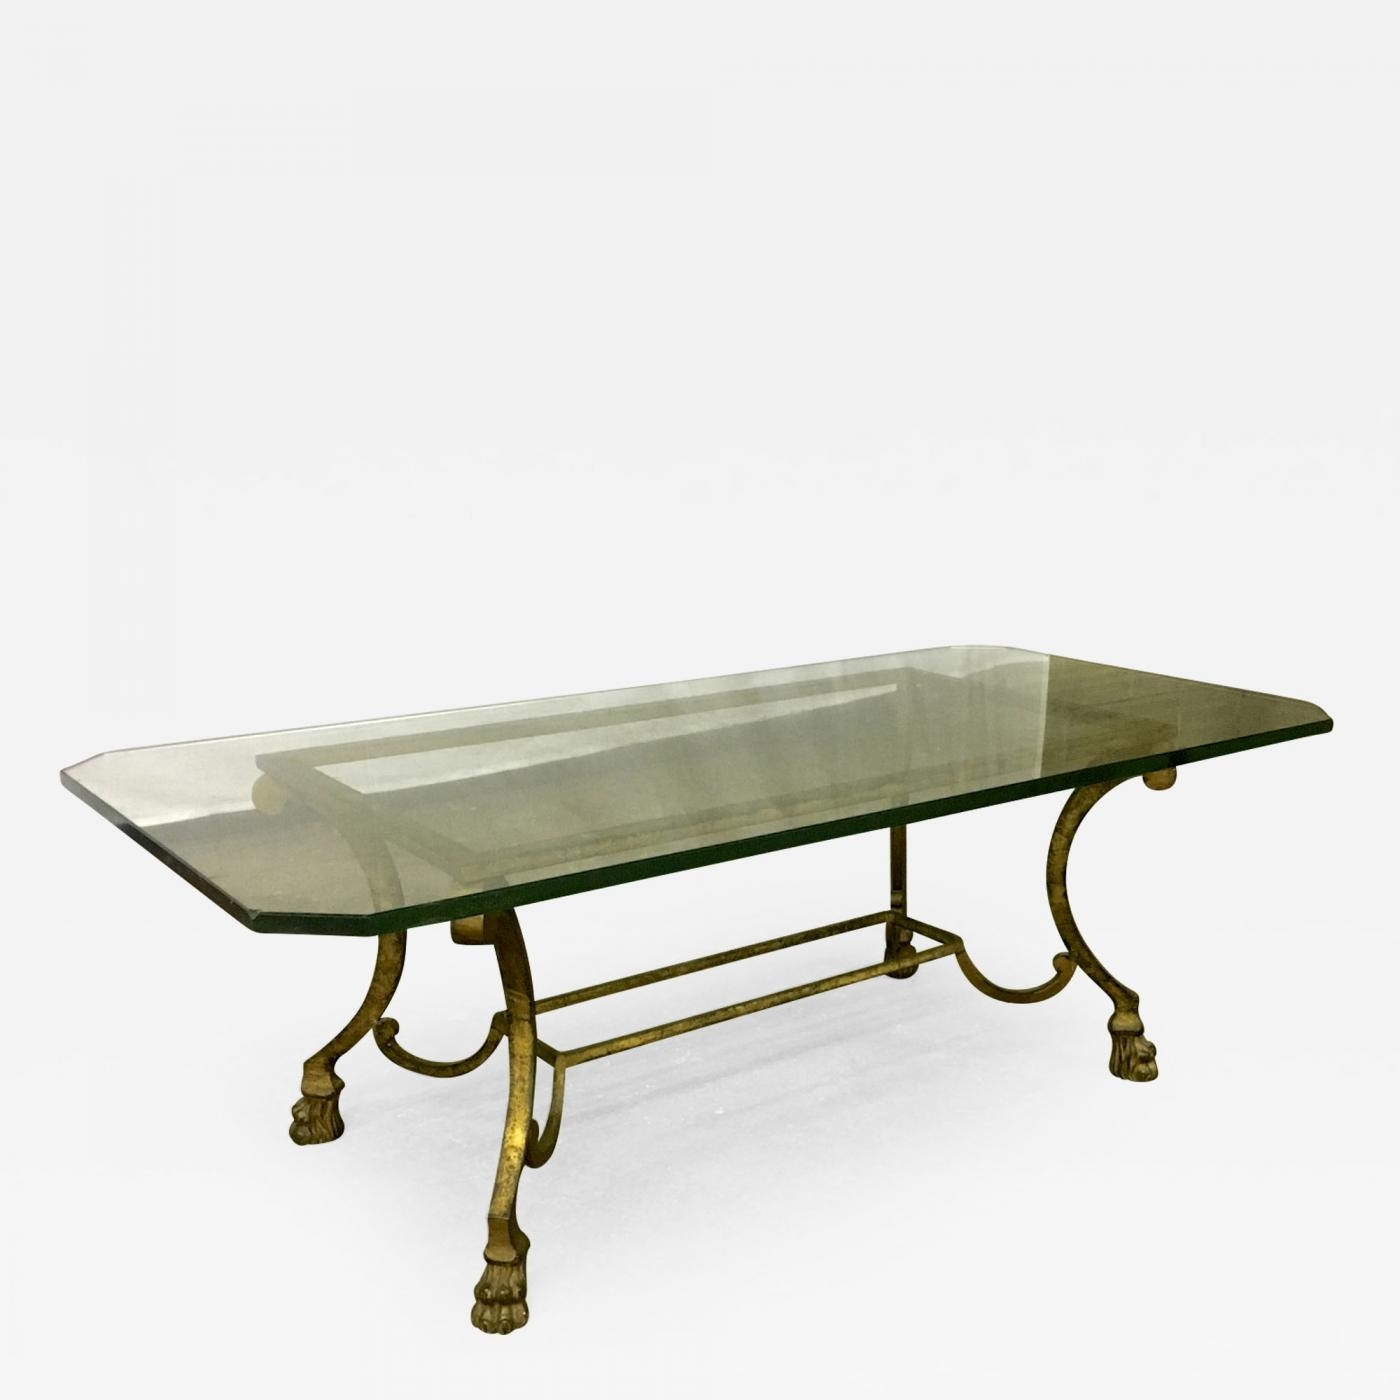 Maison Ramsay - Maison Ramsay Rarest Lion Legs Gold Leaf Wrought inside Gold Leaf Collection Coffee Tables (Image 20 of 30)